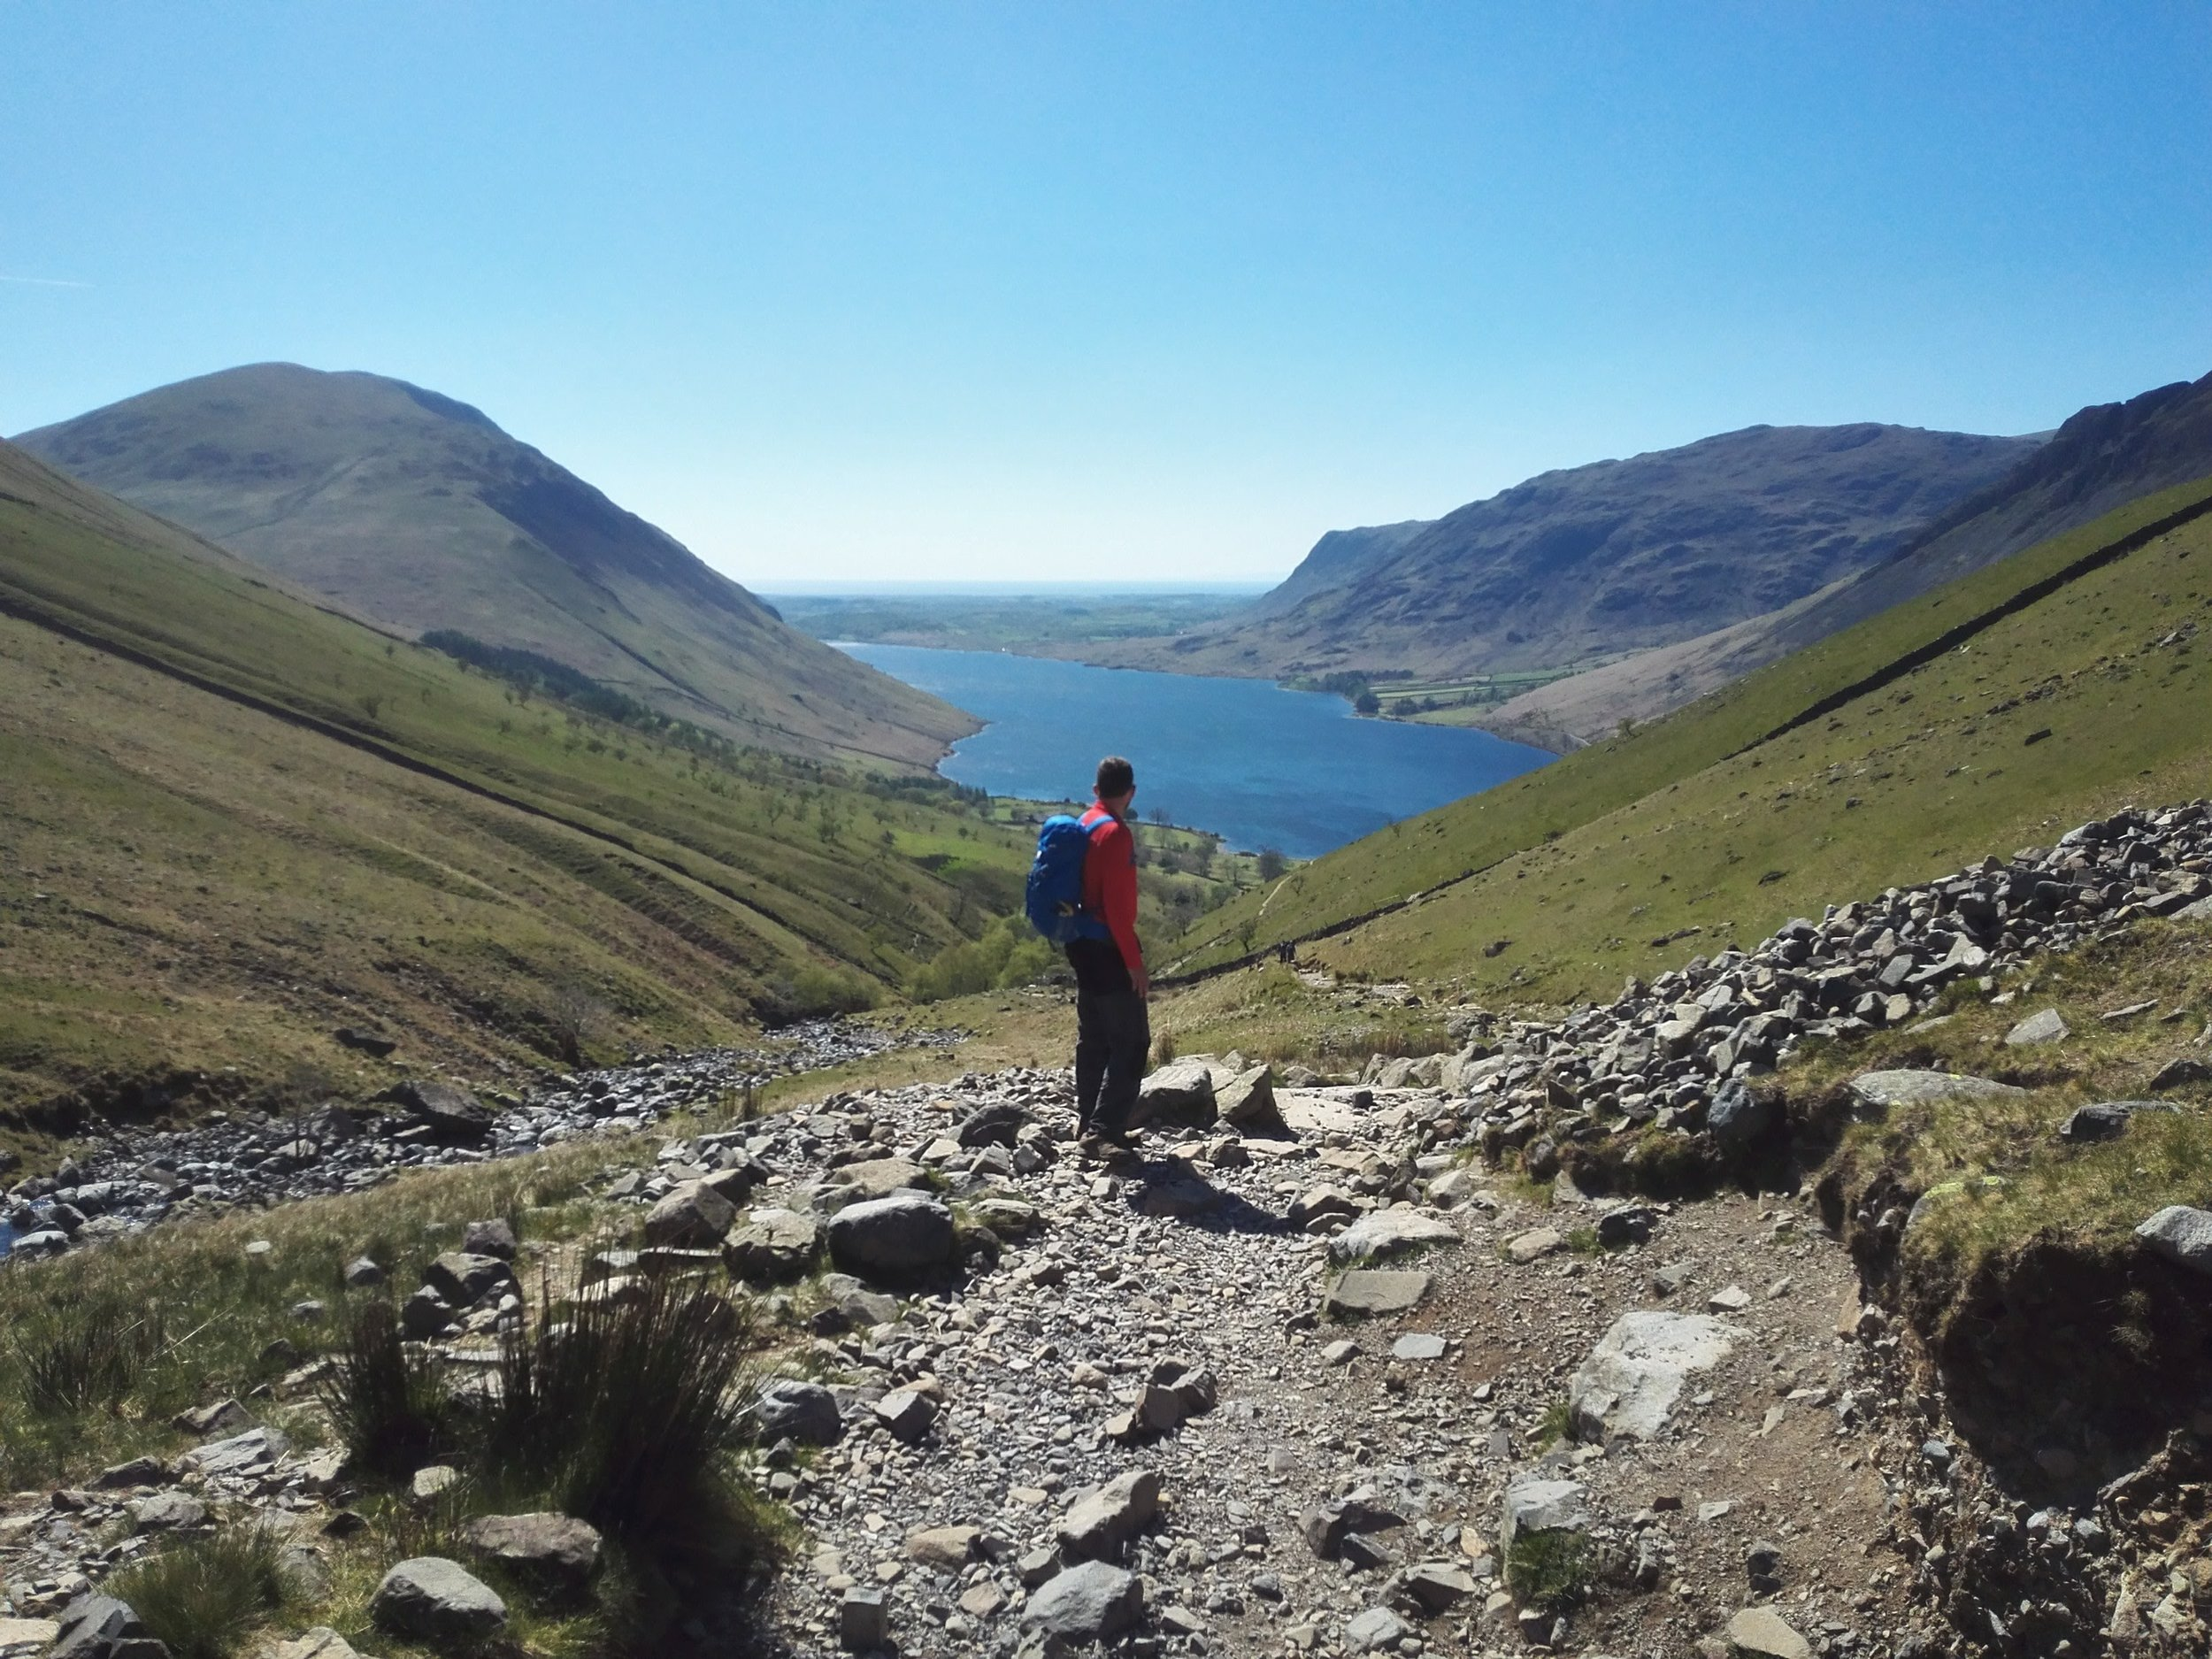 The way down, overlooking Wastwater, England's deepest lake